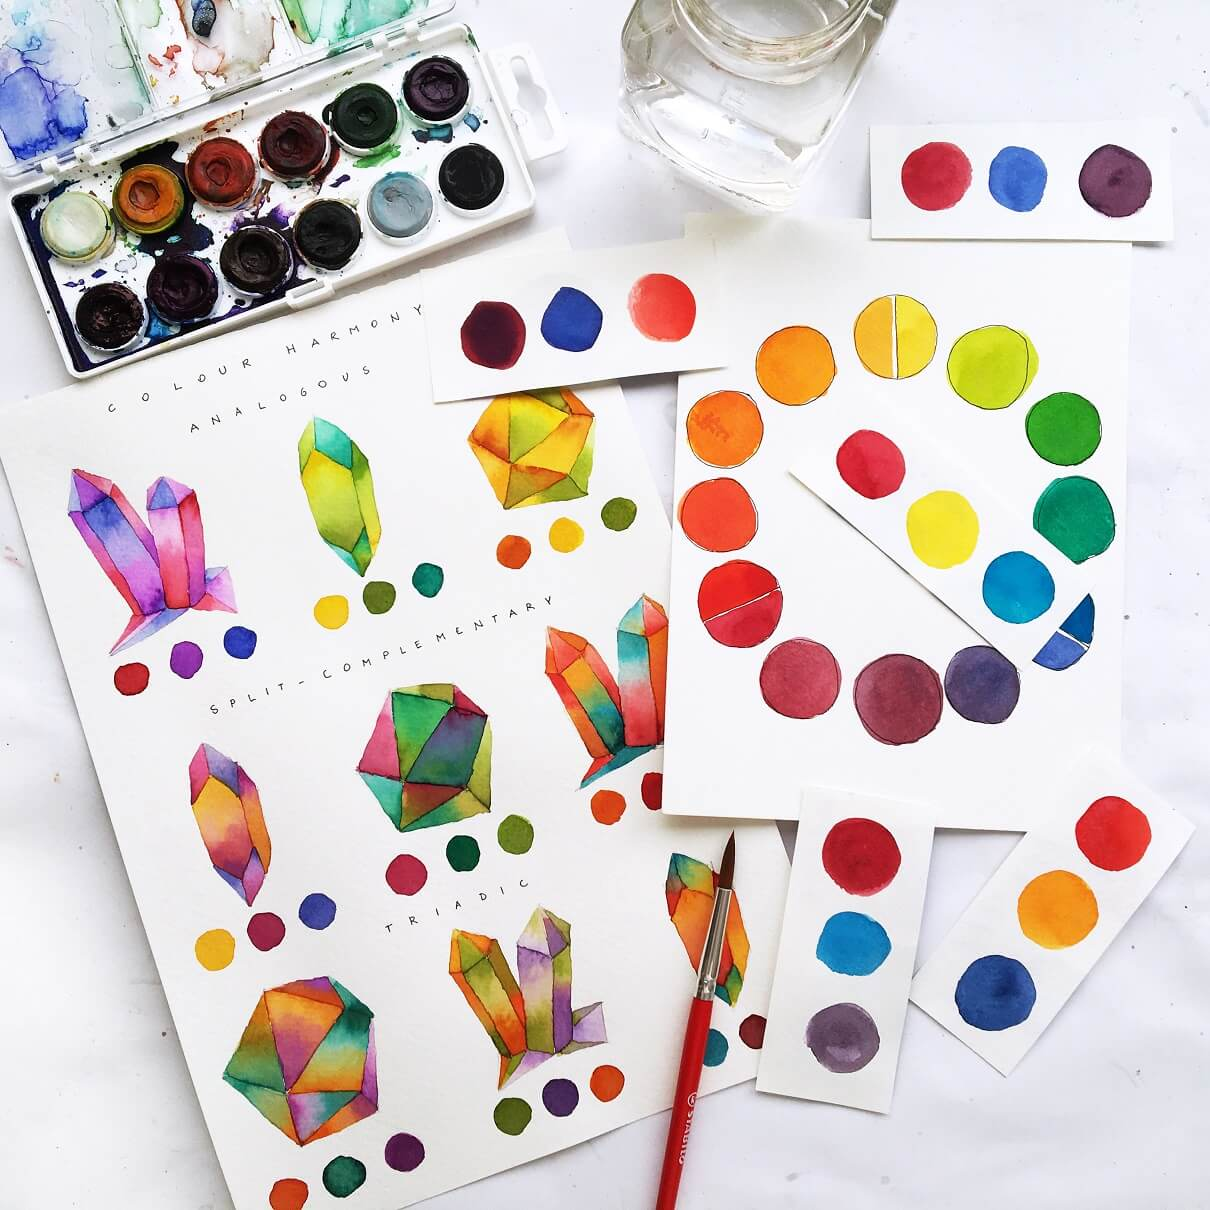 Colour mixing in watercolour like a pro